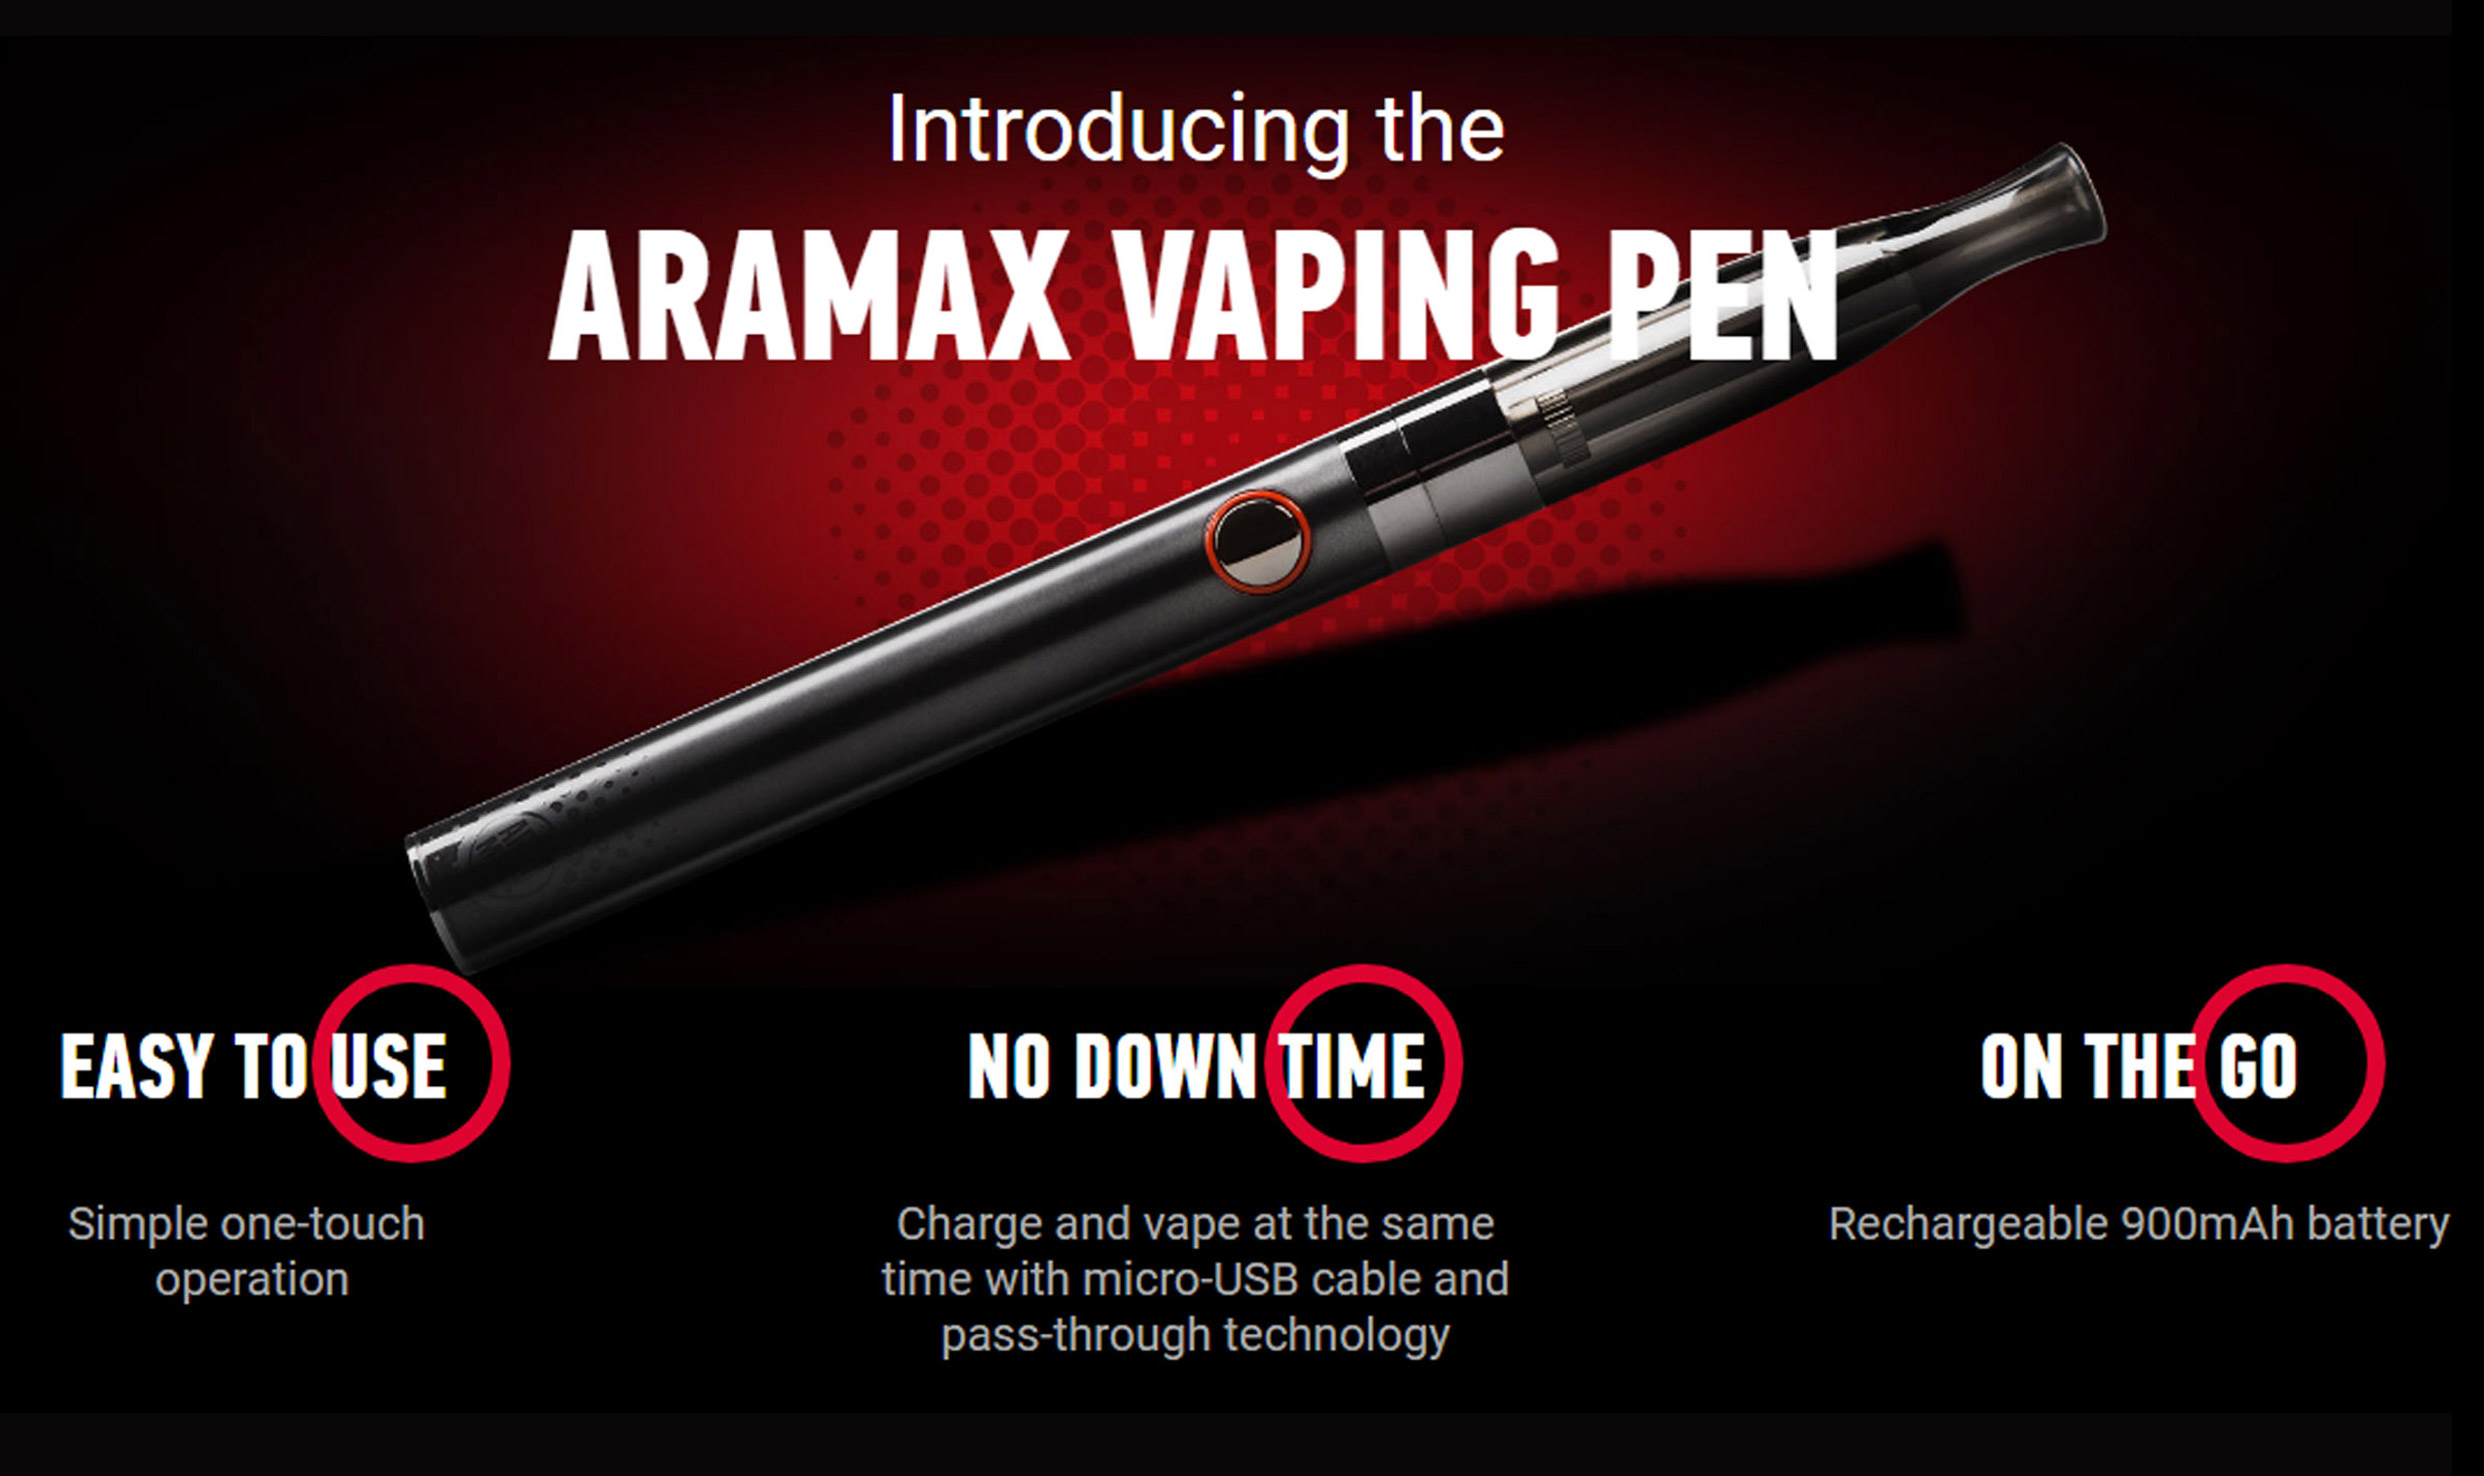 Aramax-Vaping-Pen